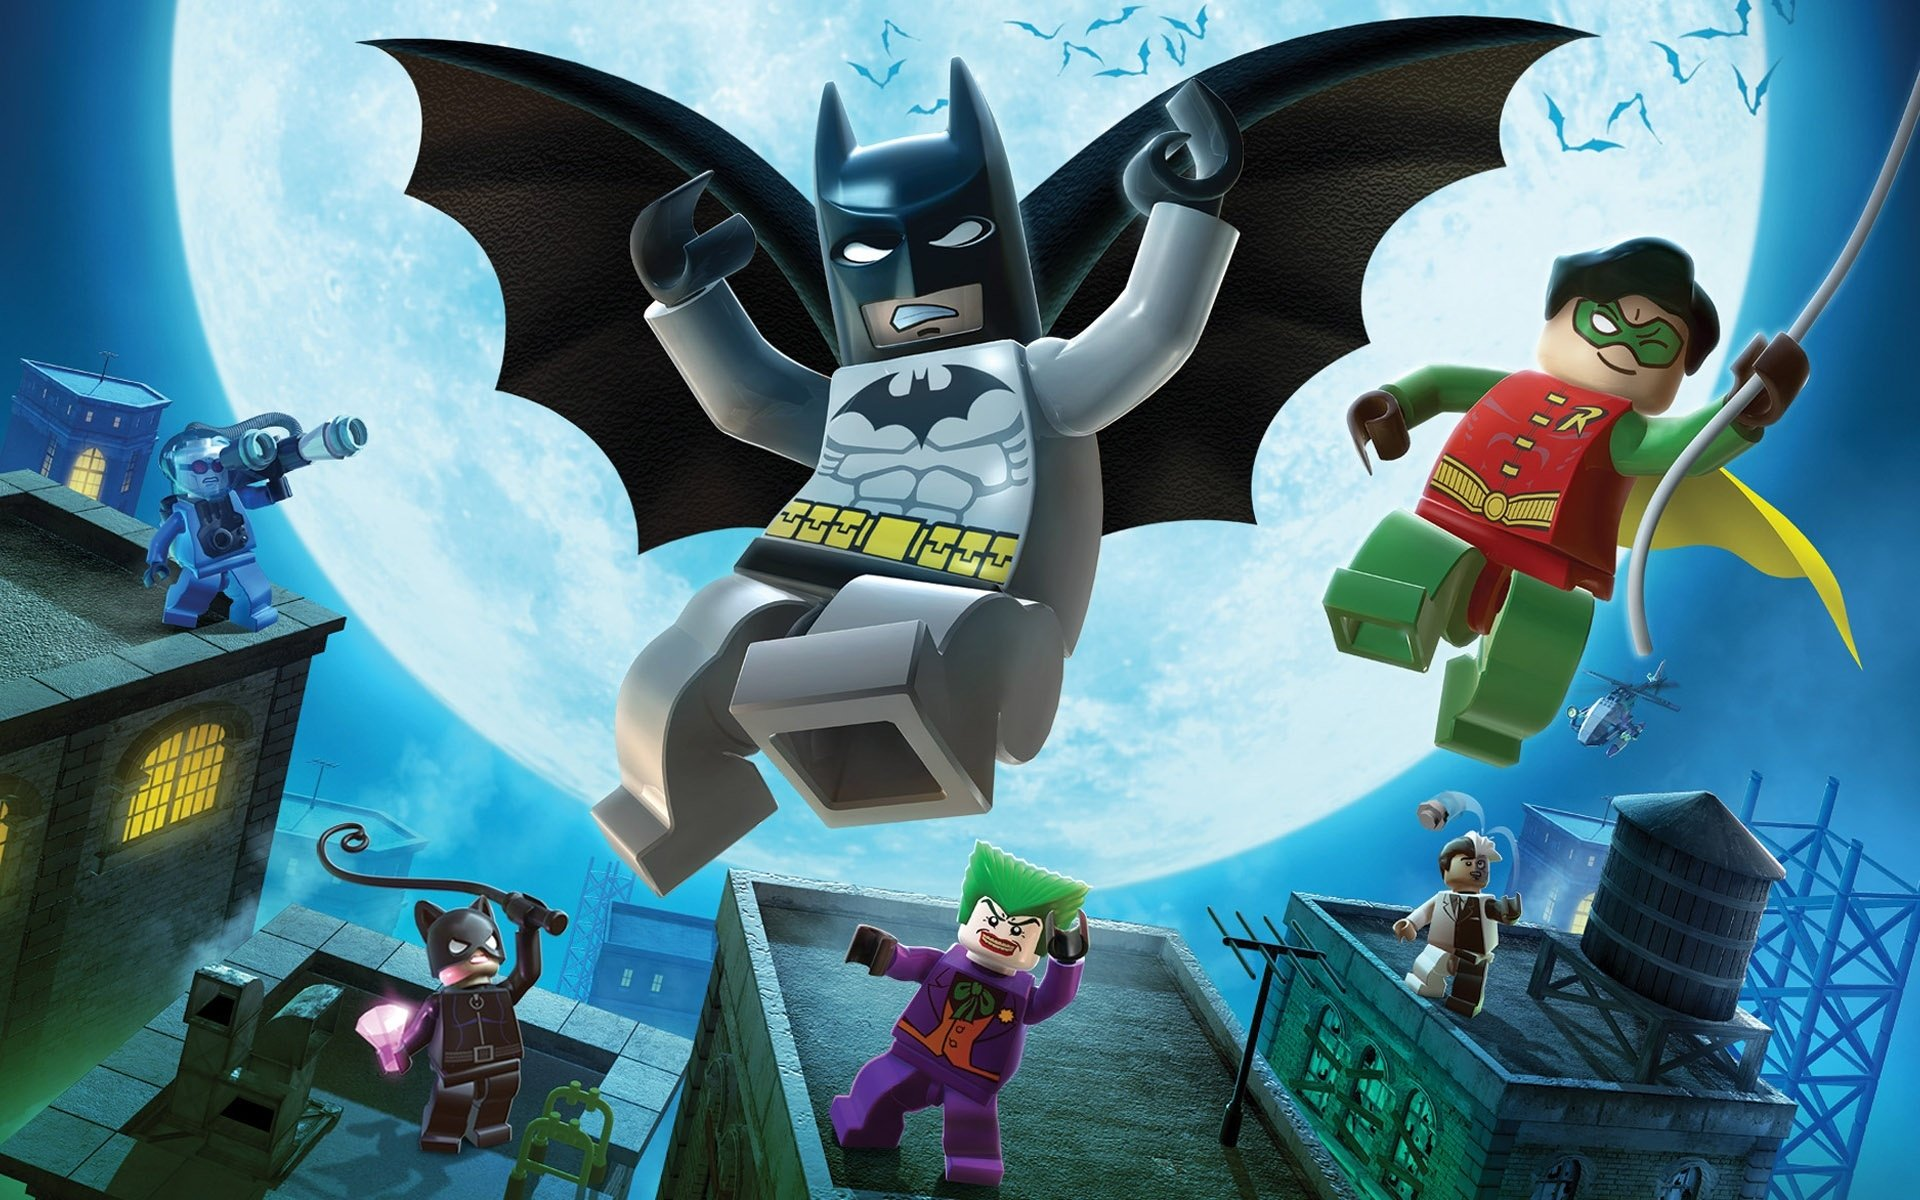 Video Game - LEGO Batman: The Videogame  Lego Batman Robin (Batman) Mr Freeze Joker Two-Face Catwoman Game Wallpaper